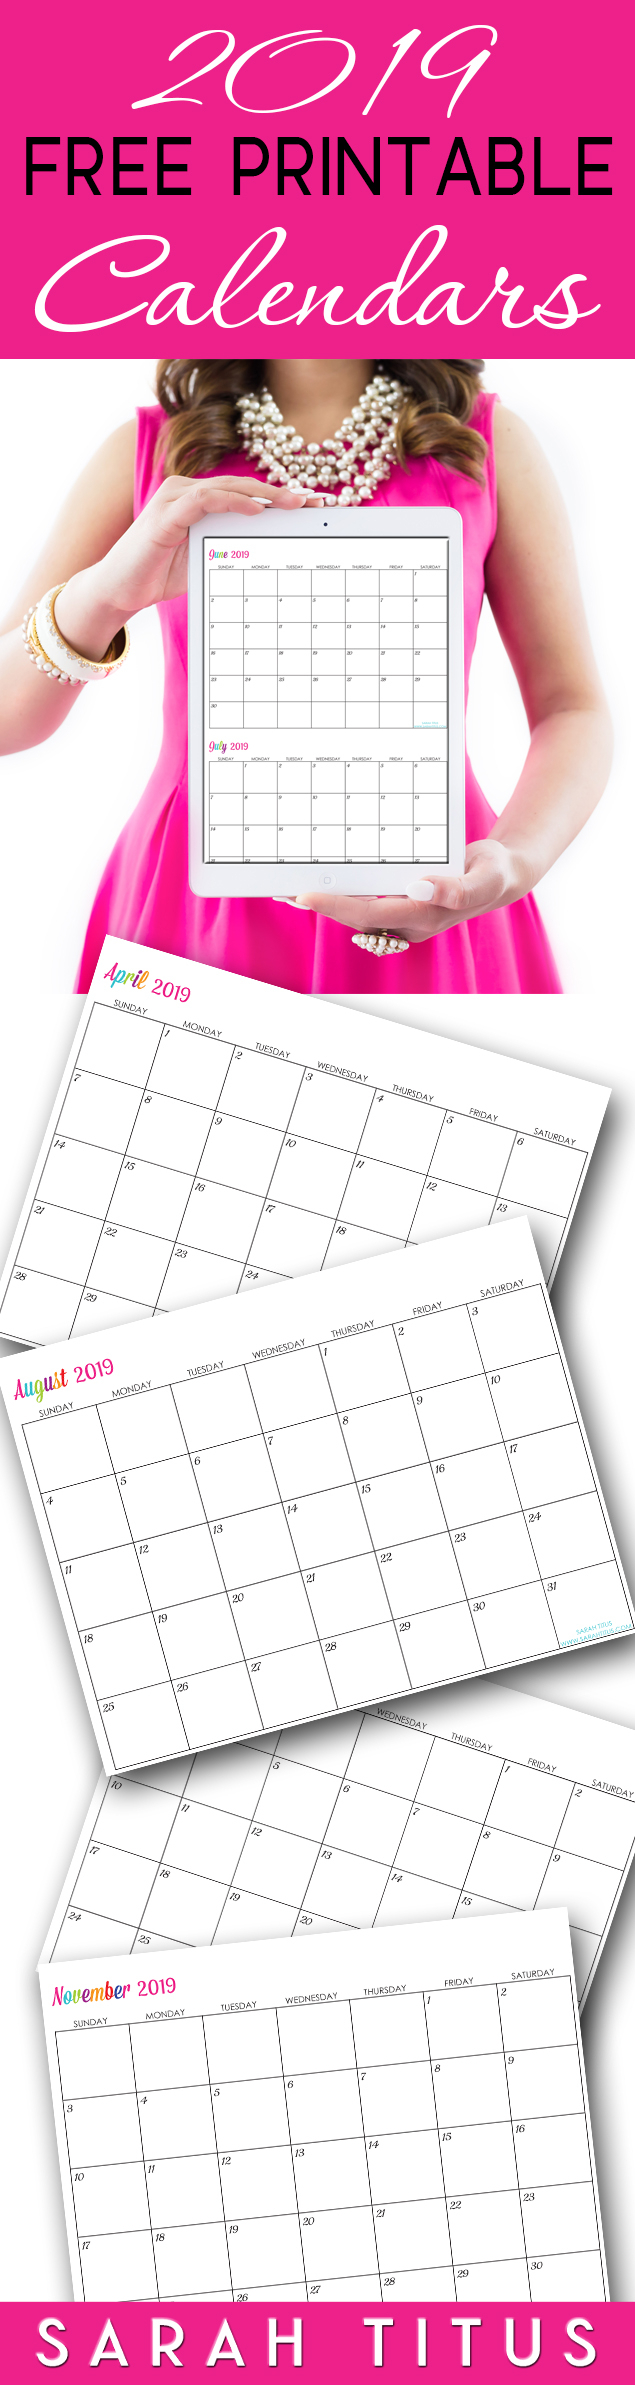 Custom Editable Free Printable 2019 Calendars  Sarah Titus throughout Sarah Titus Calendar